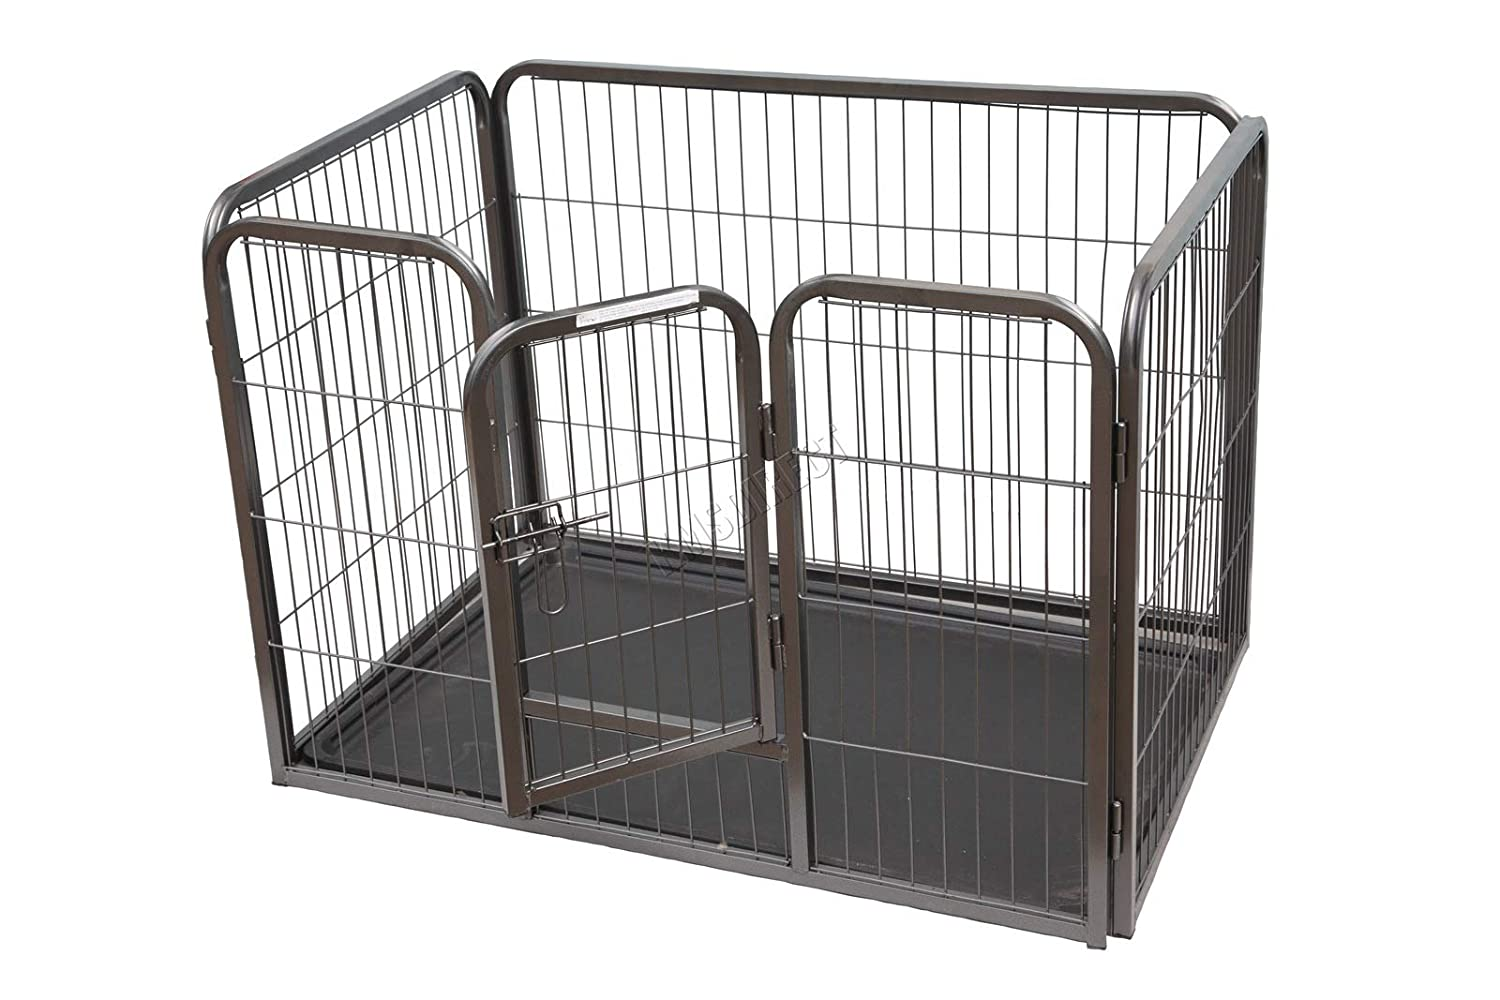 FoxHunter Heavy Duty Foldable Pet Play Pen Enclosure Metal Whelping Playpen Dog Puppy Exercise Run Cage with Tray for Dog Cat Rabbit Duck Chicken Small FH-MPP-02S Hammered Silver